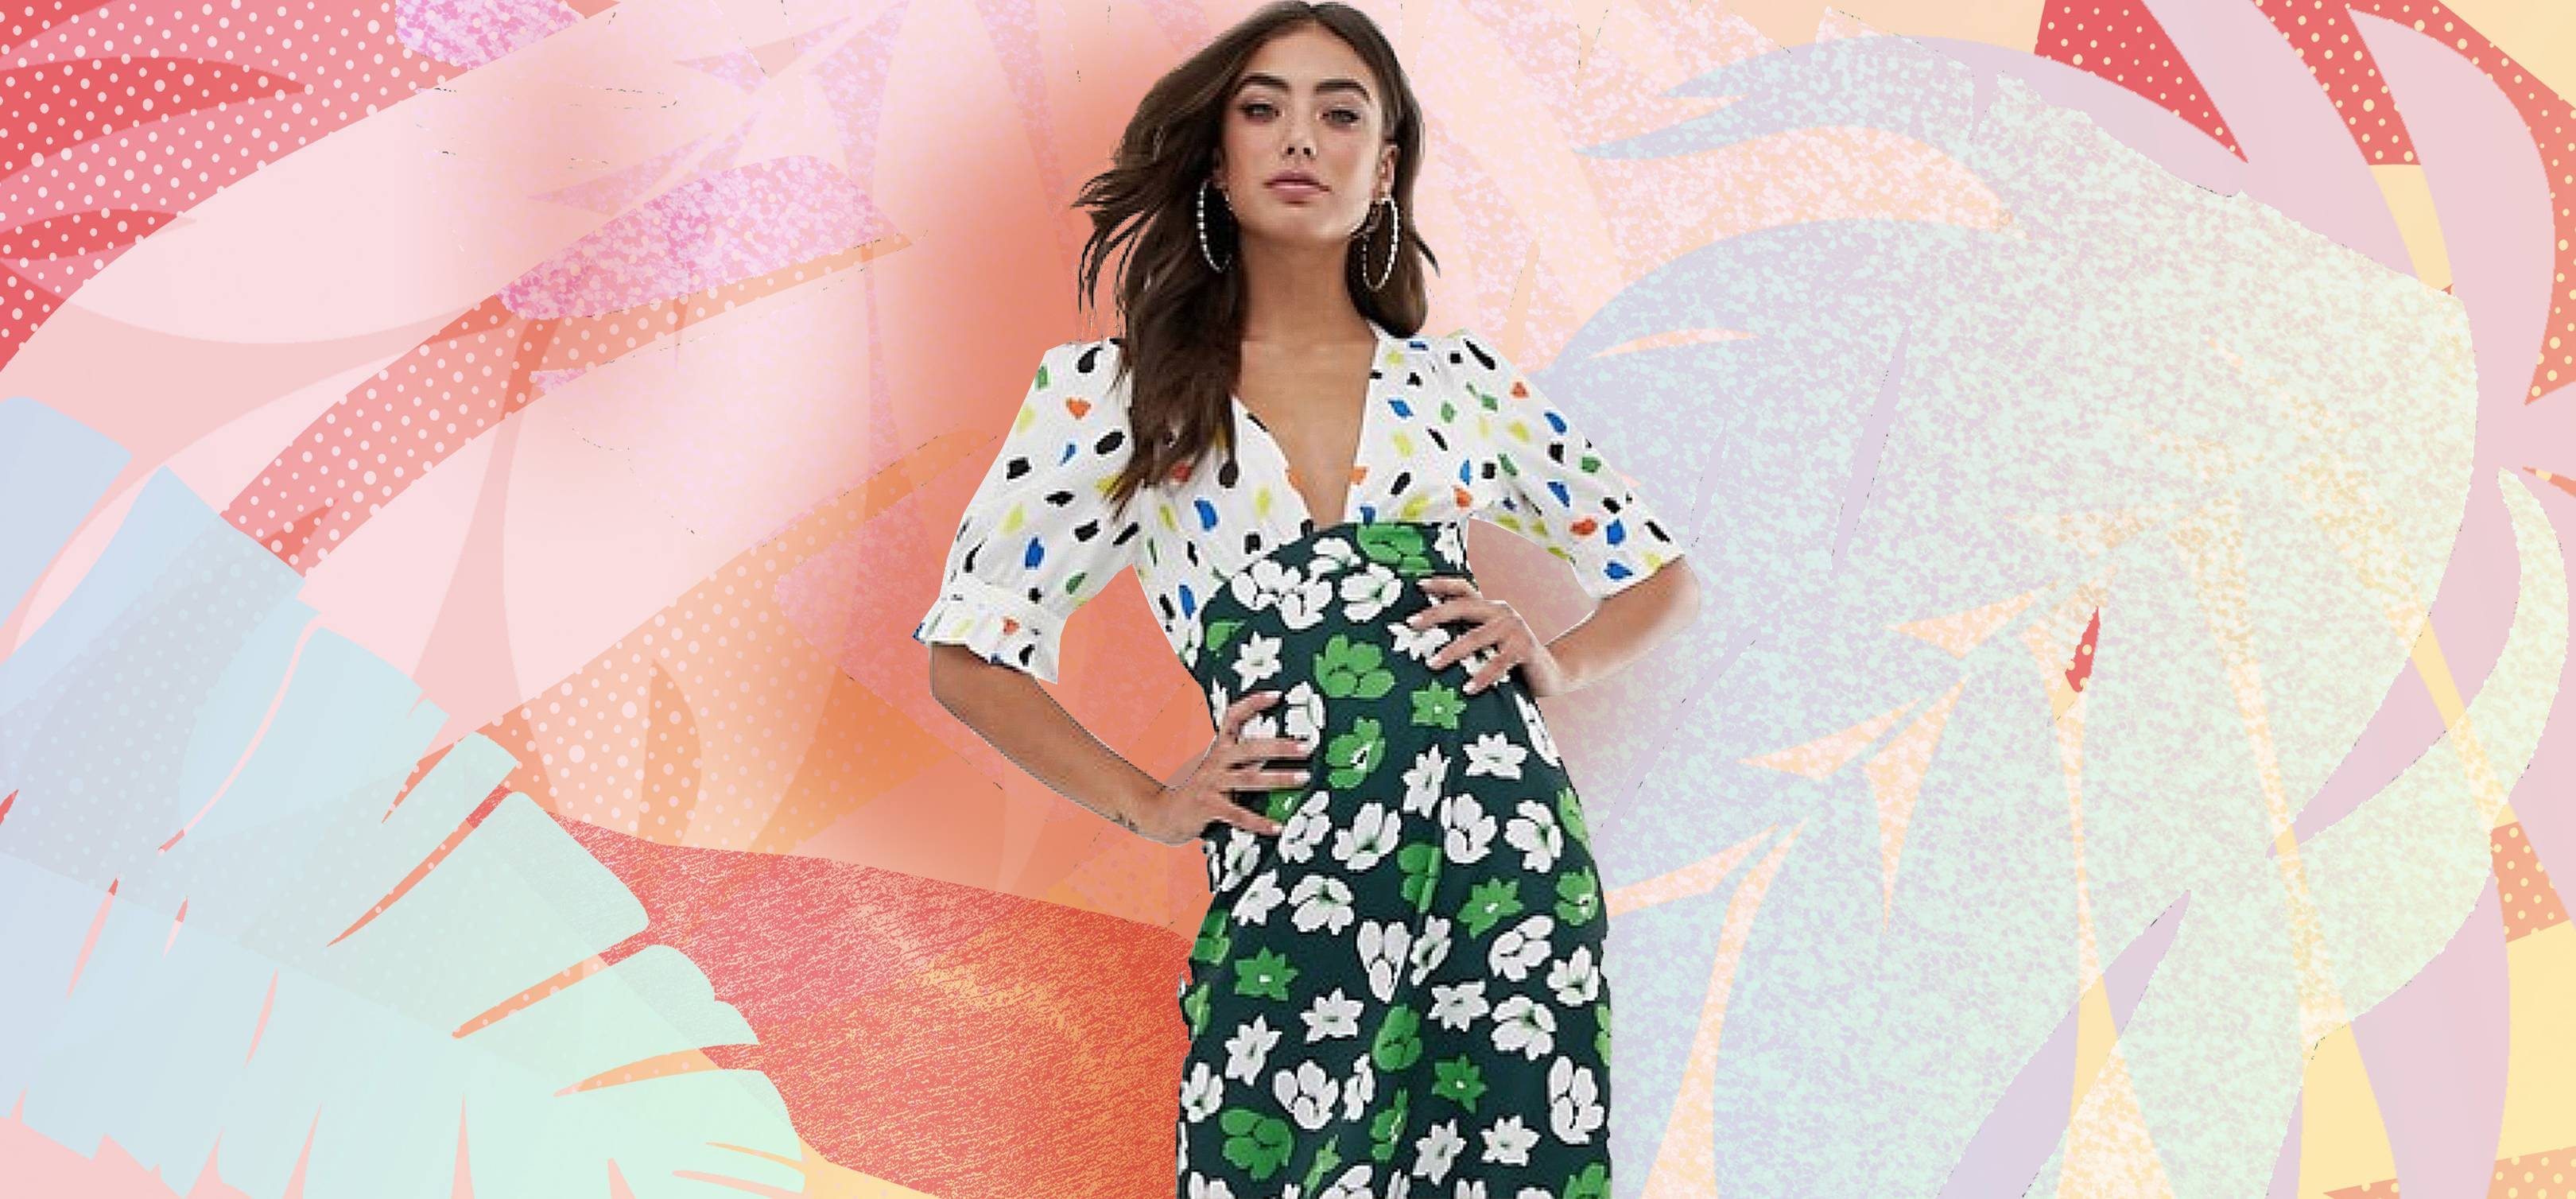 a6f6dbe368 The ASOS Mixed Print Dress Everyone Is Buying For Summer Weddings | Glamour  UK